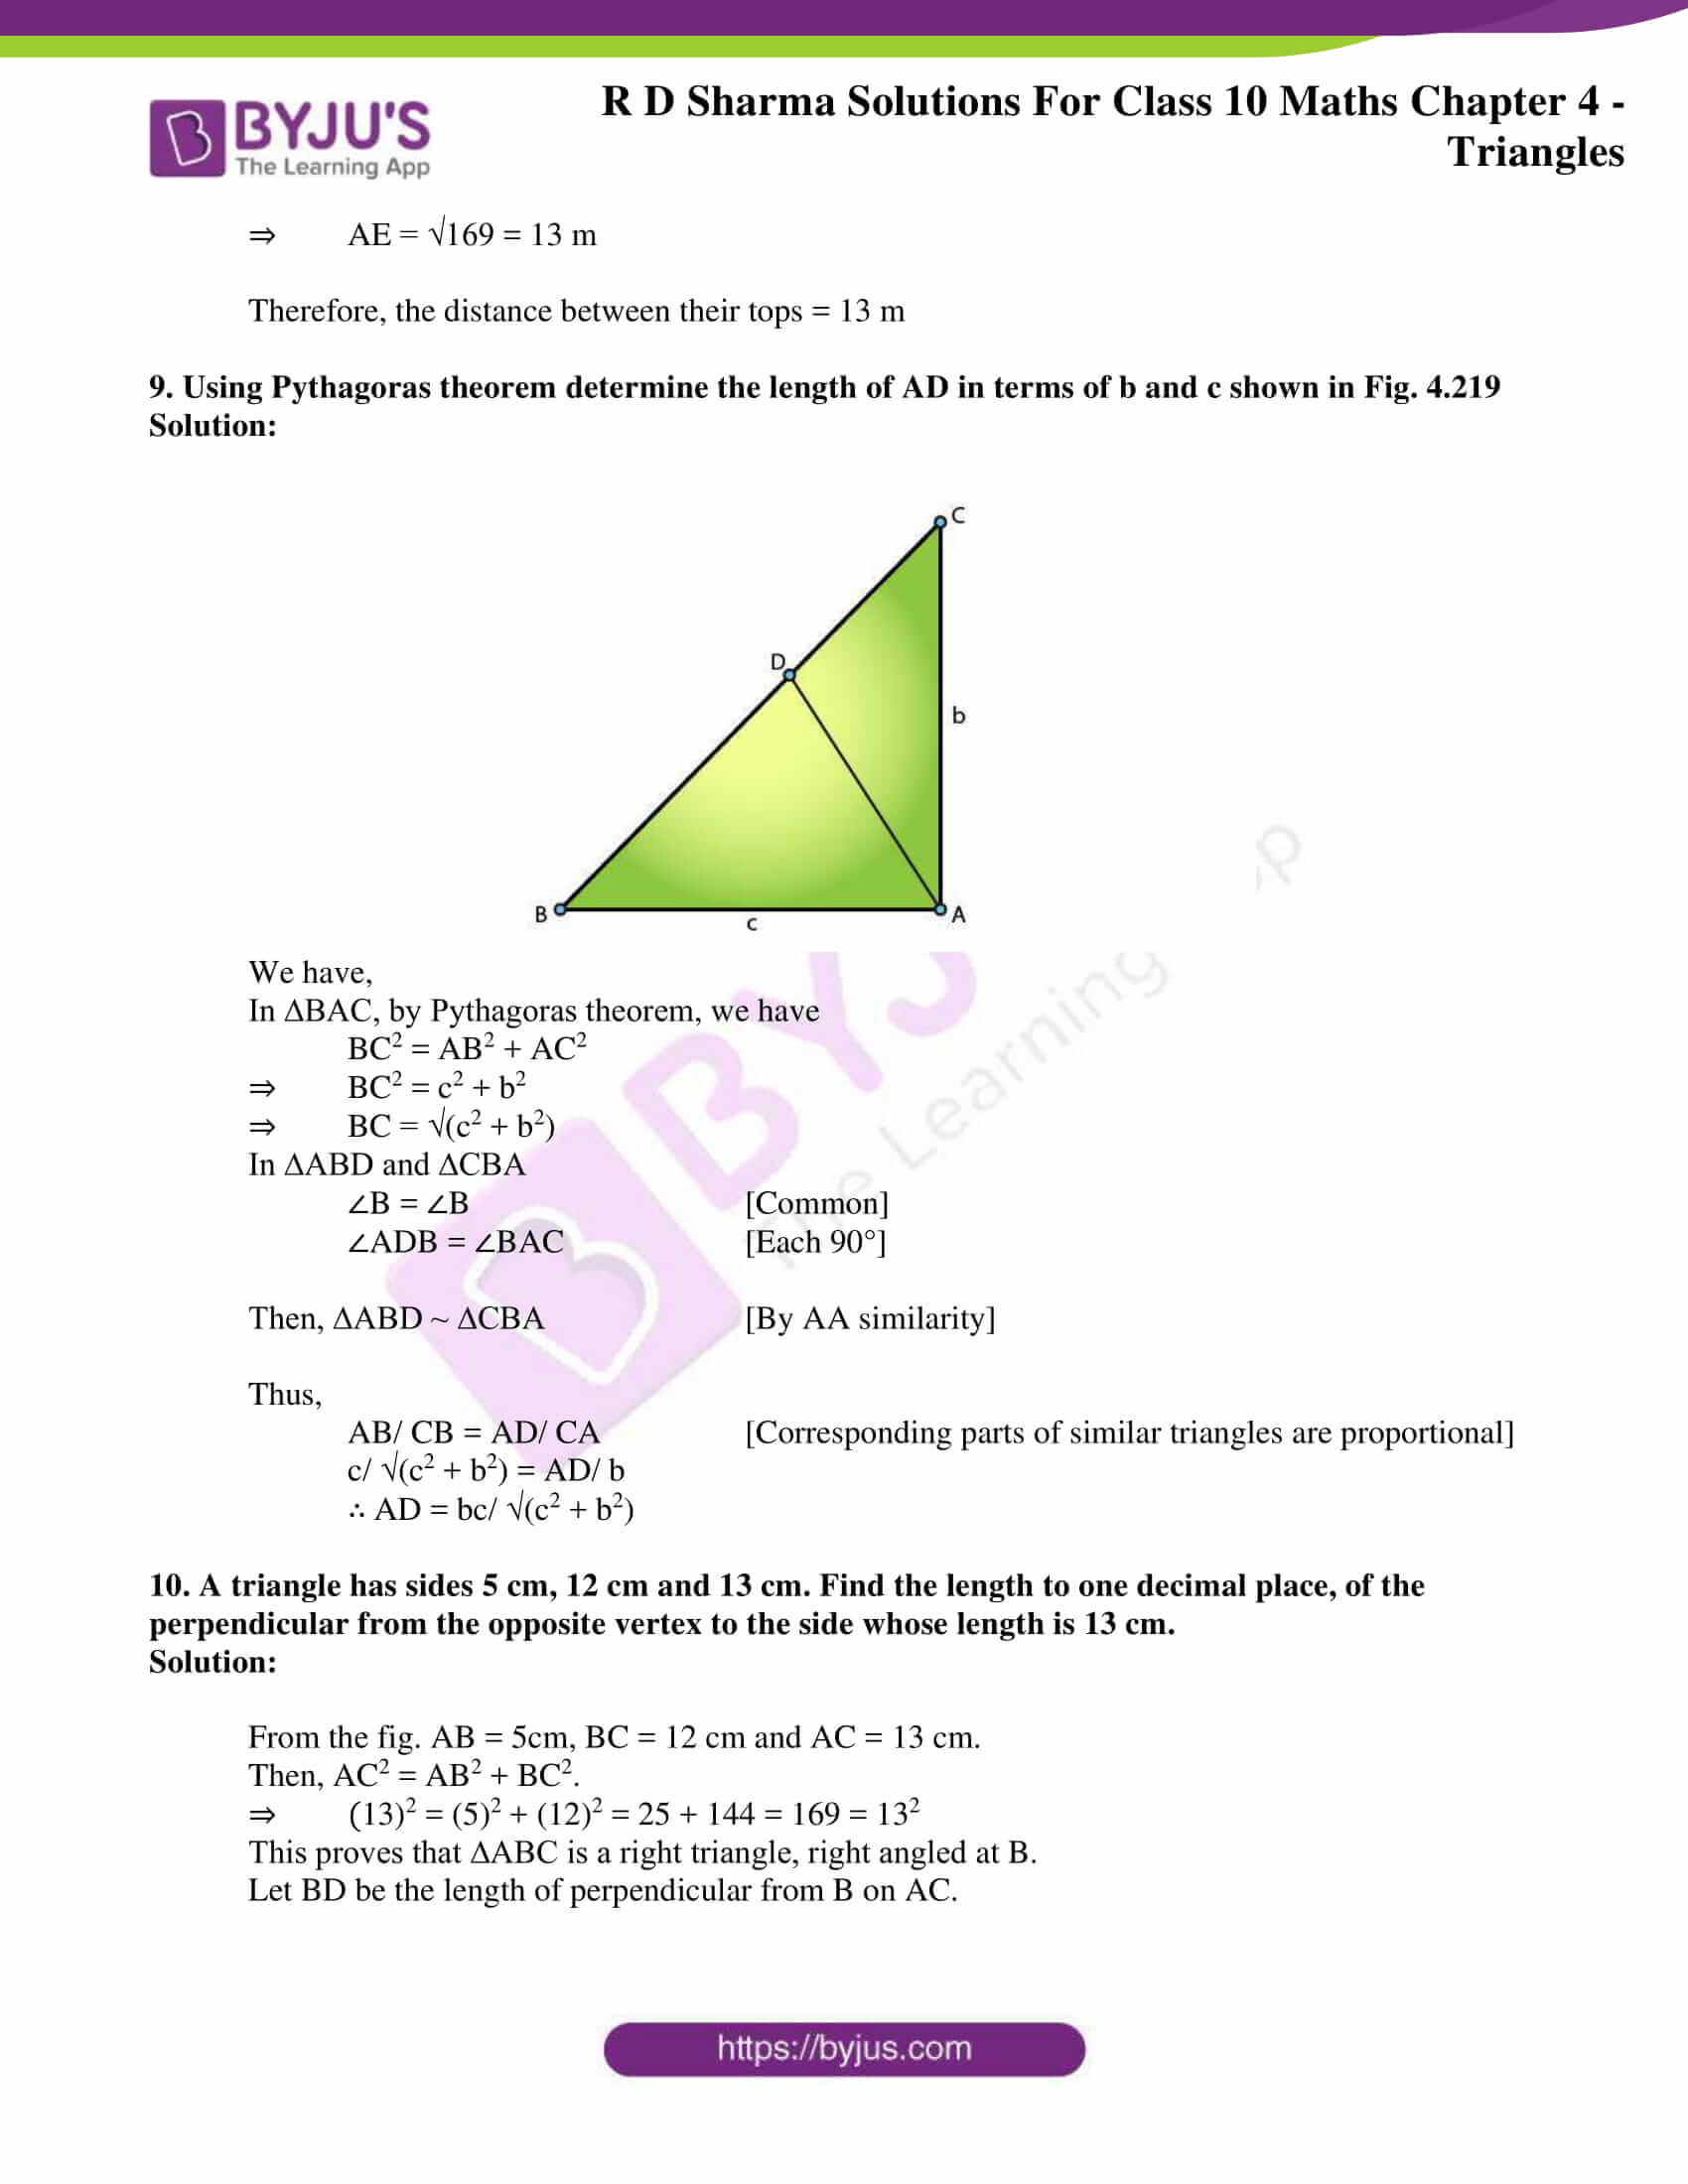 rd sharma solutions for class 10 chapter 4 ex 4.7